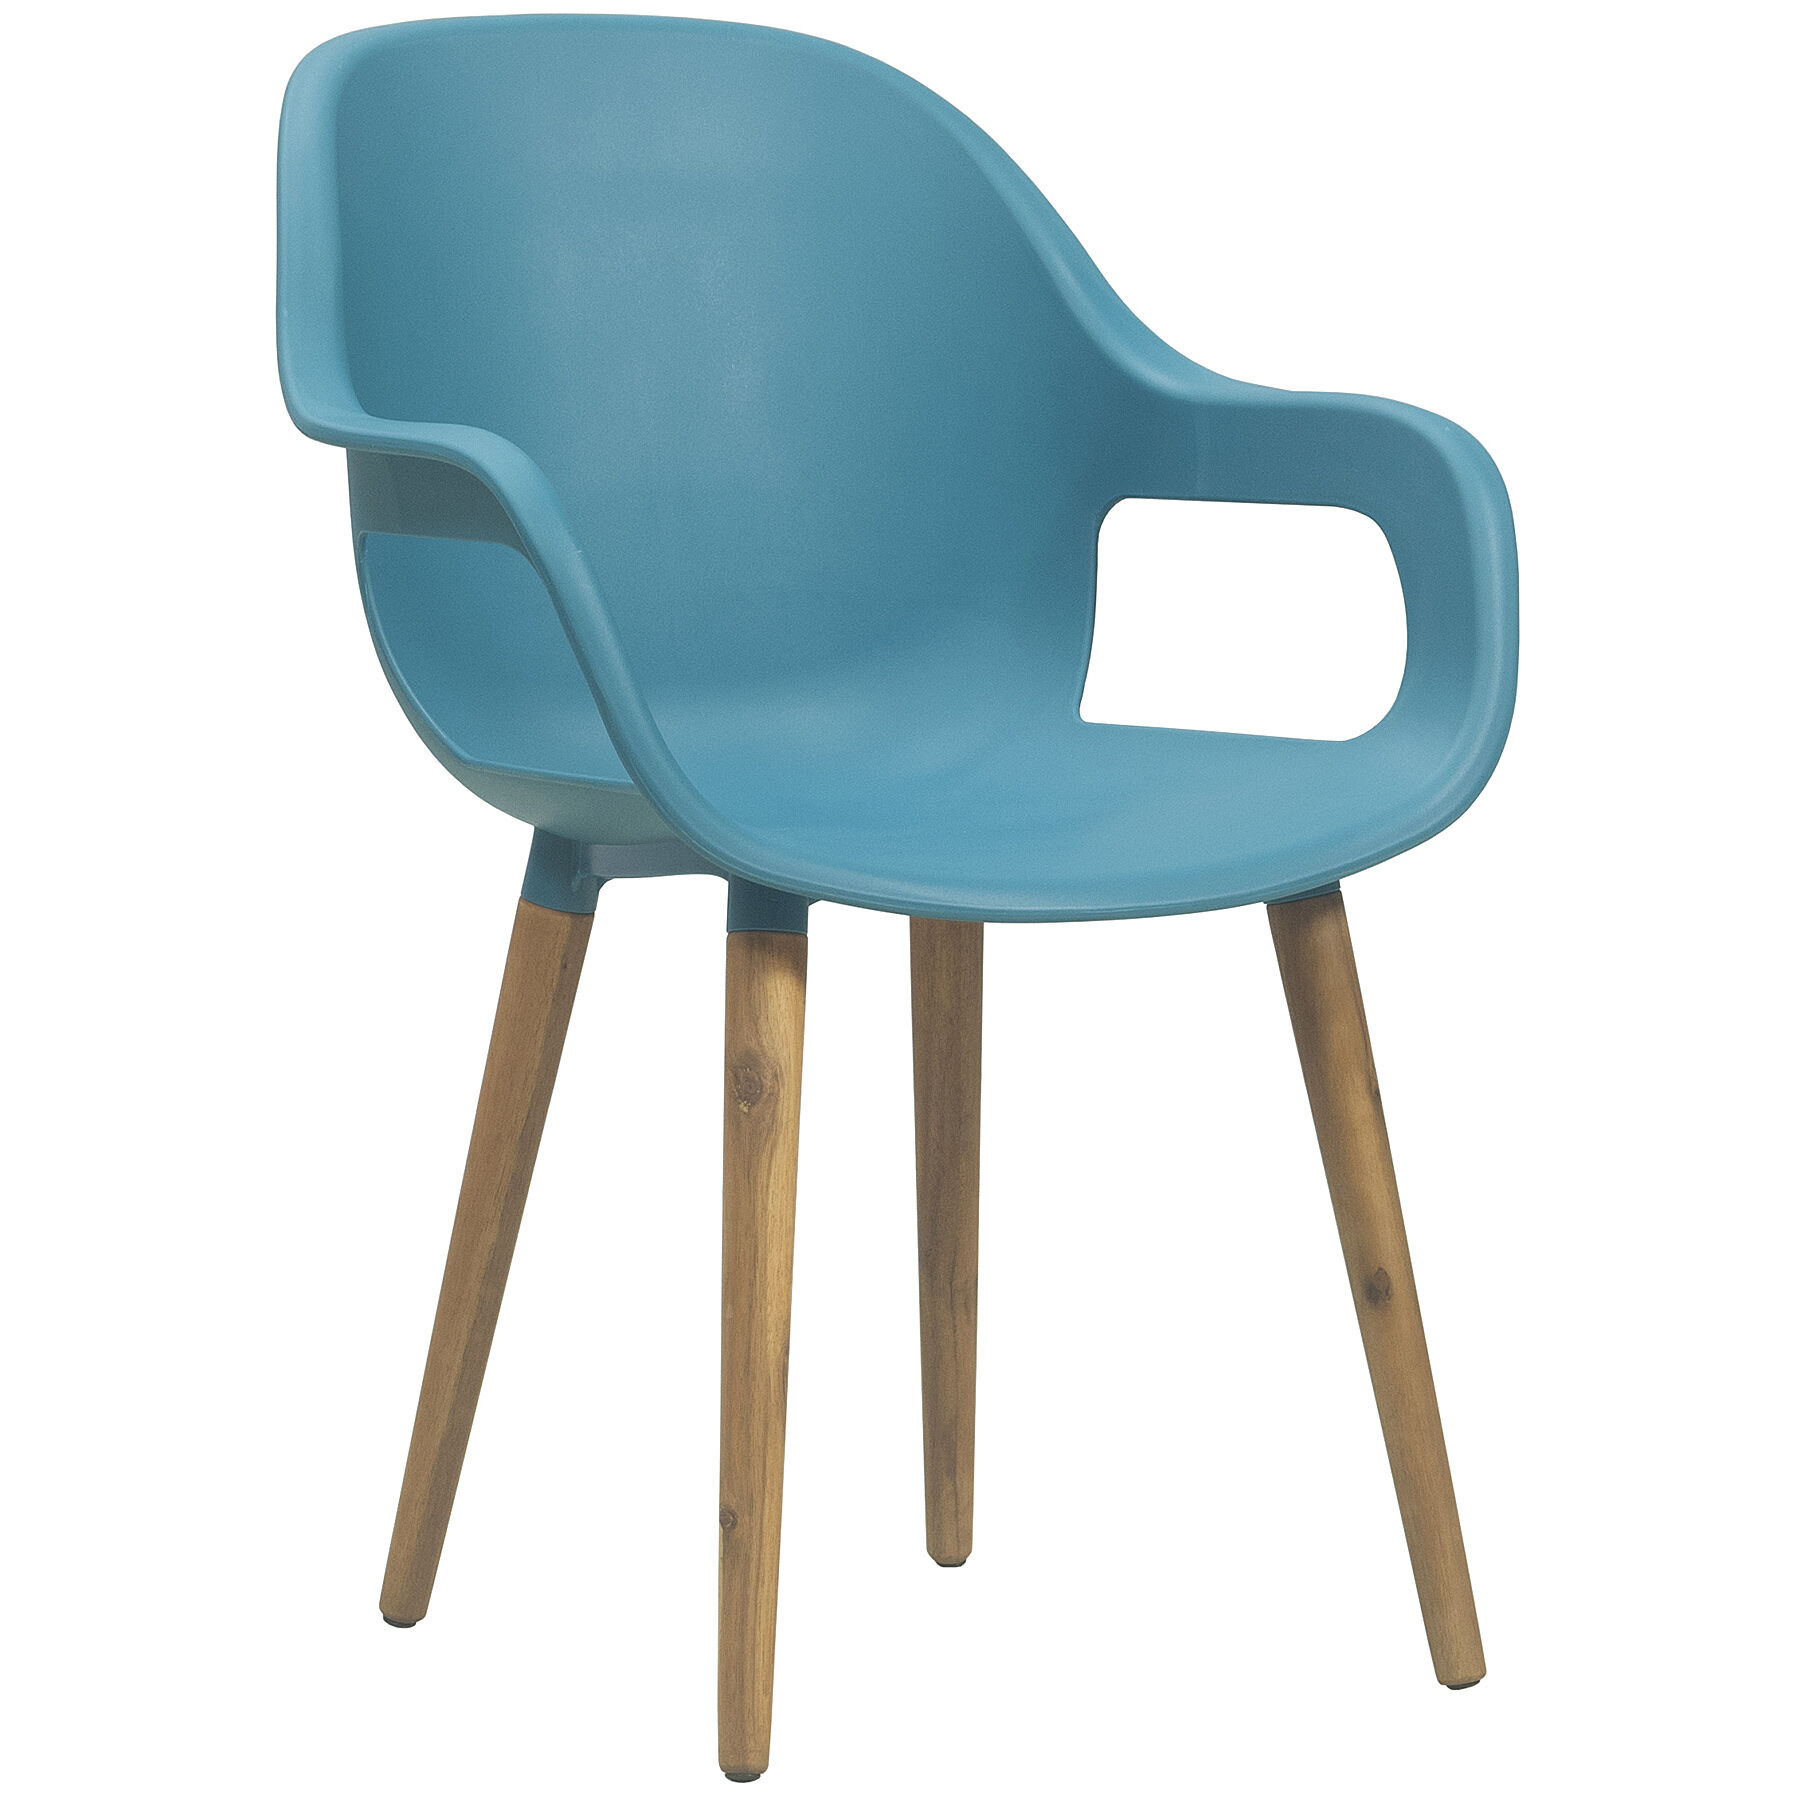 teal colored chairs light blue accent chair coachella at home zoom